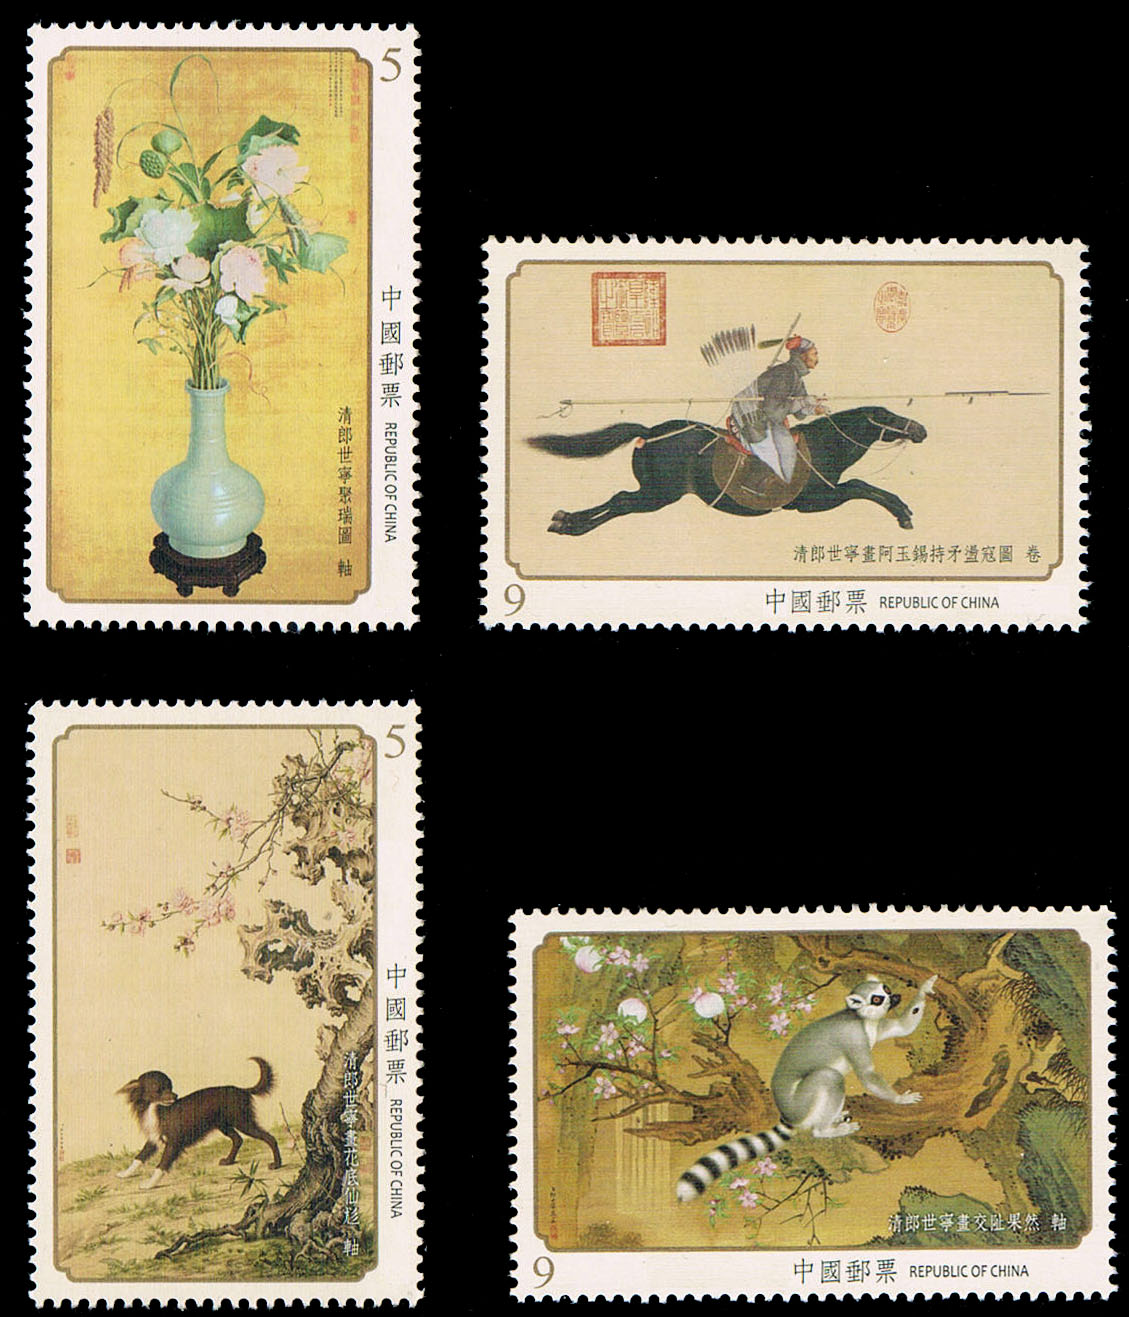 Taiwan 2015 Lang Shining 629 Taipei the Imperial Palace collection paintings stamps 4 new 1018 exid taipei